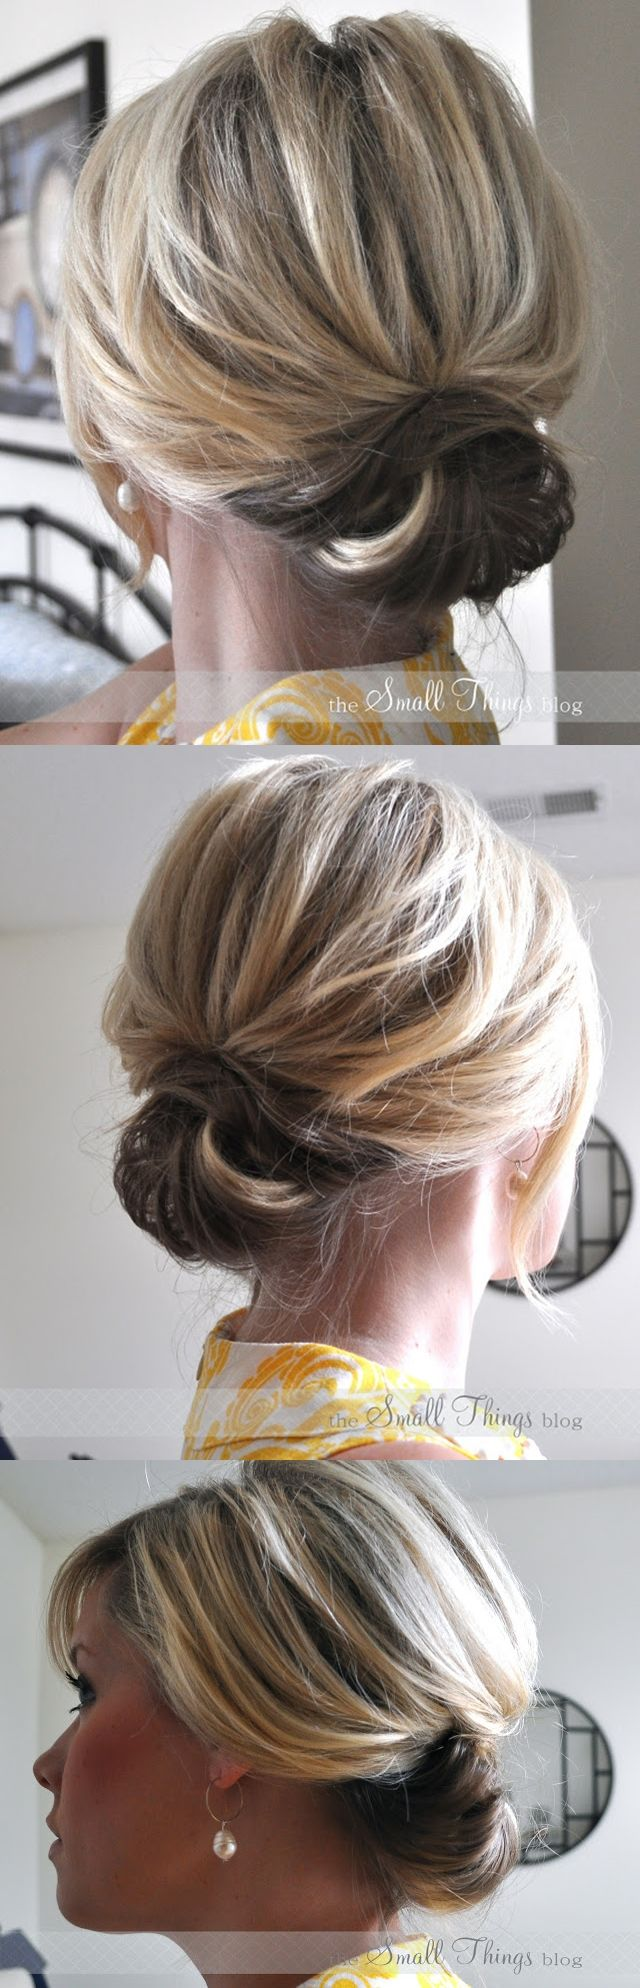 Outstanding 1000 Ideas About Short Hair Updo On Pinterest Hair Updo Short Hairstyles Gunalazisus